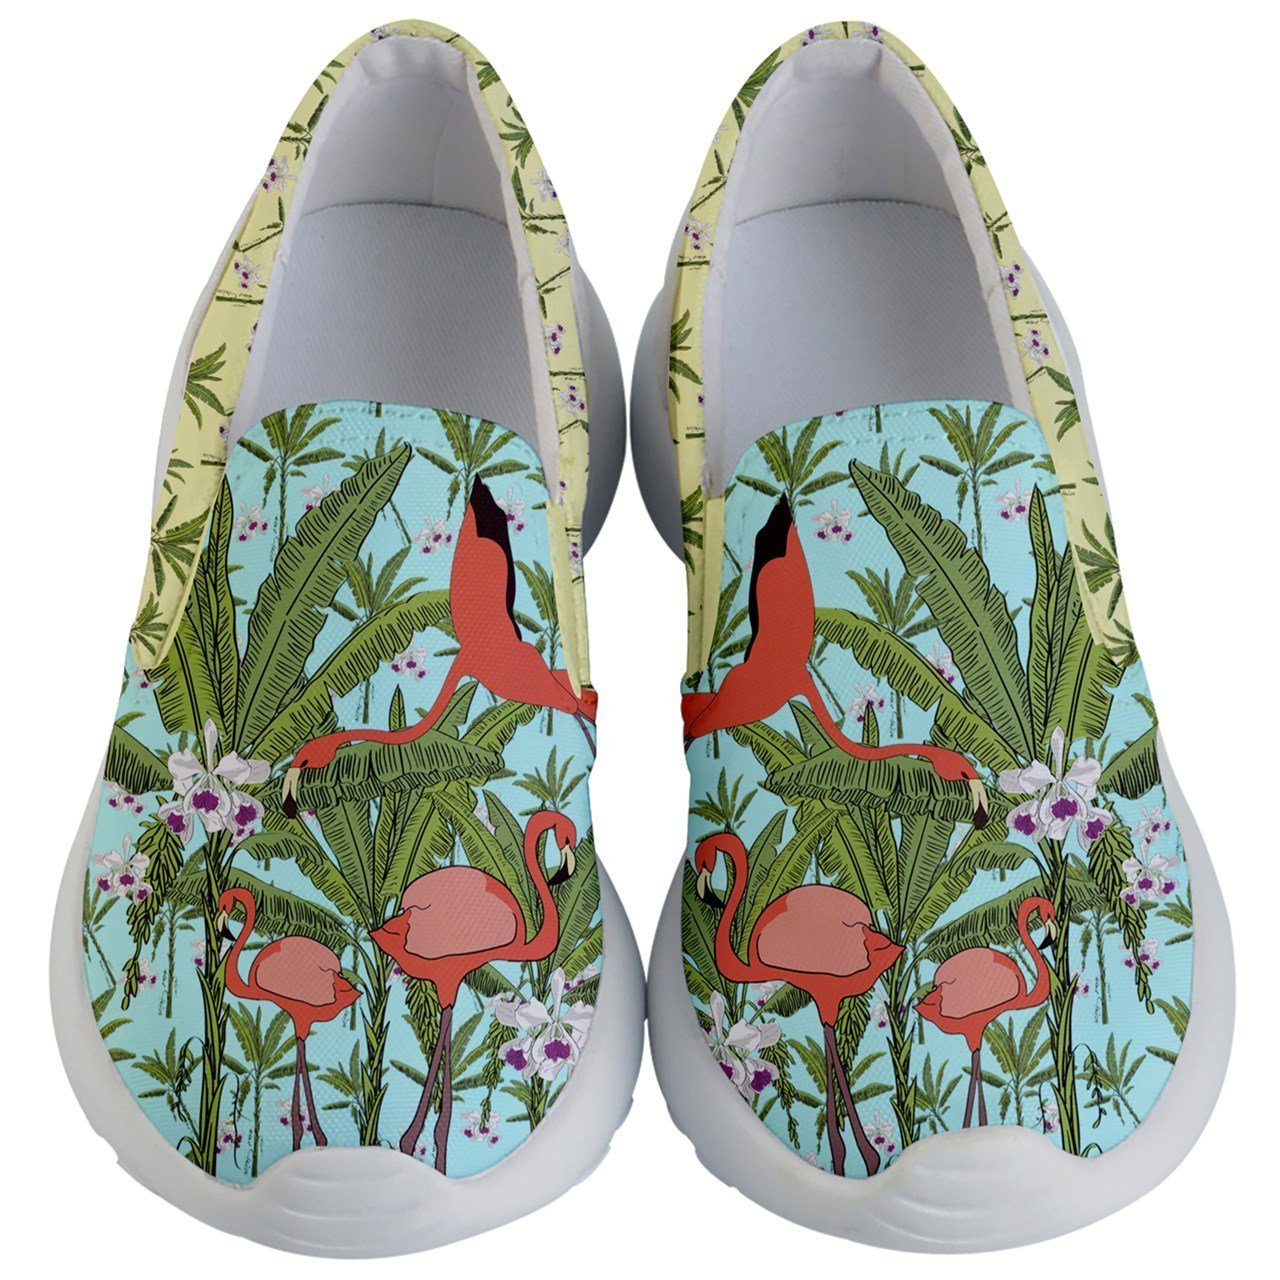 PattyCandy Little/Big Kids Sneakers Africa Zoo & Farm Animals Print Lightweight Slip Ons for 2-13 Years Old PattyCandy-148833016